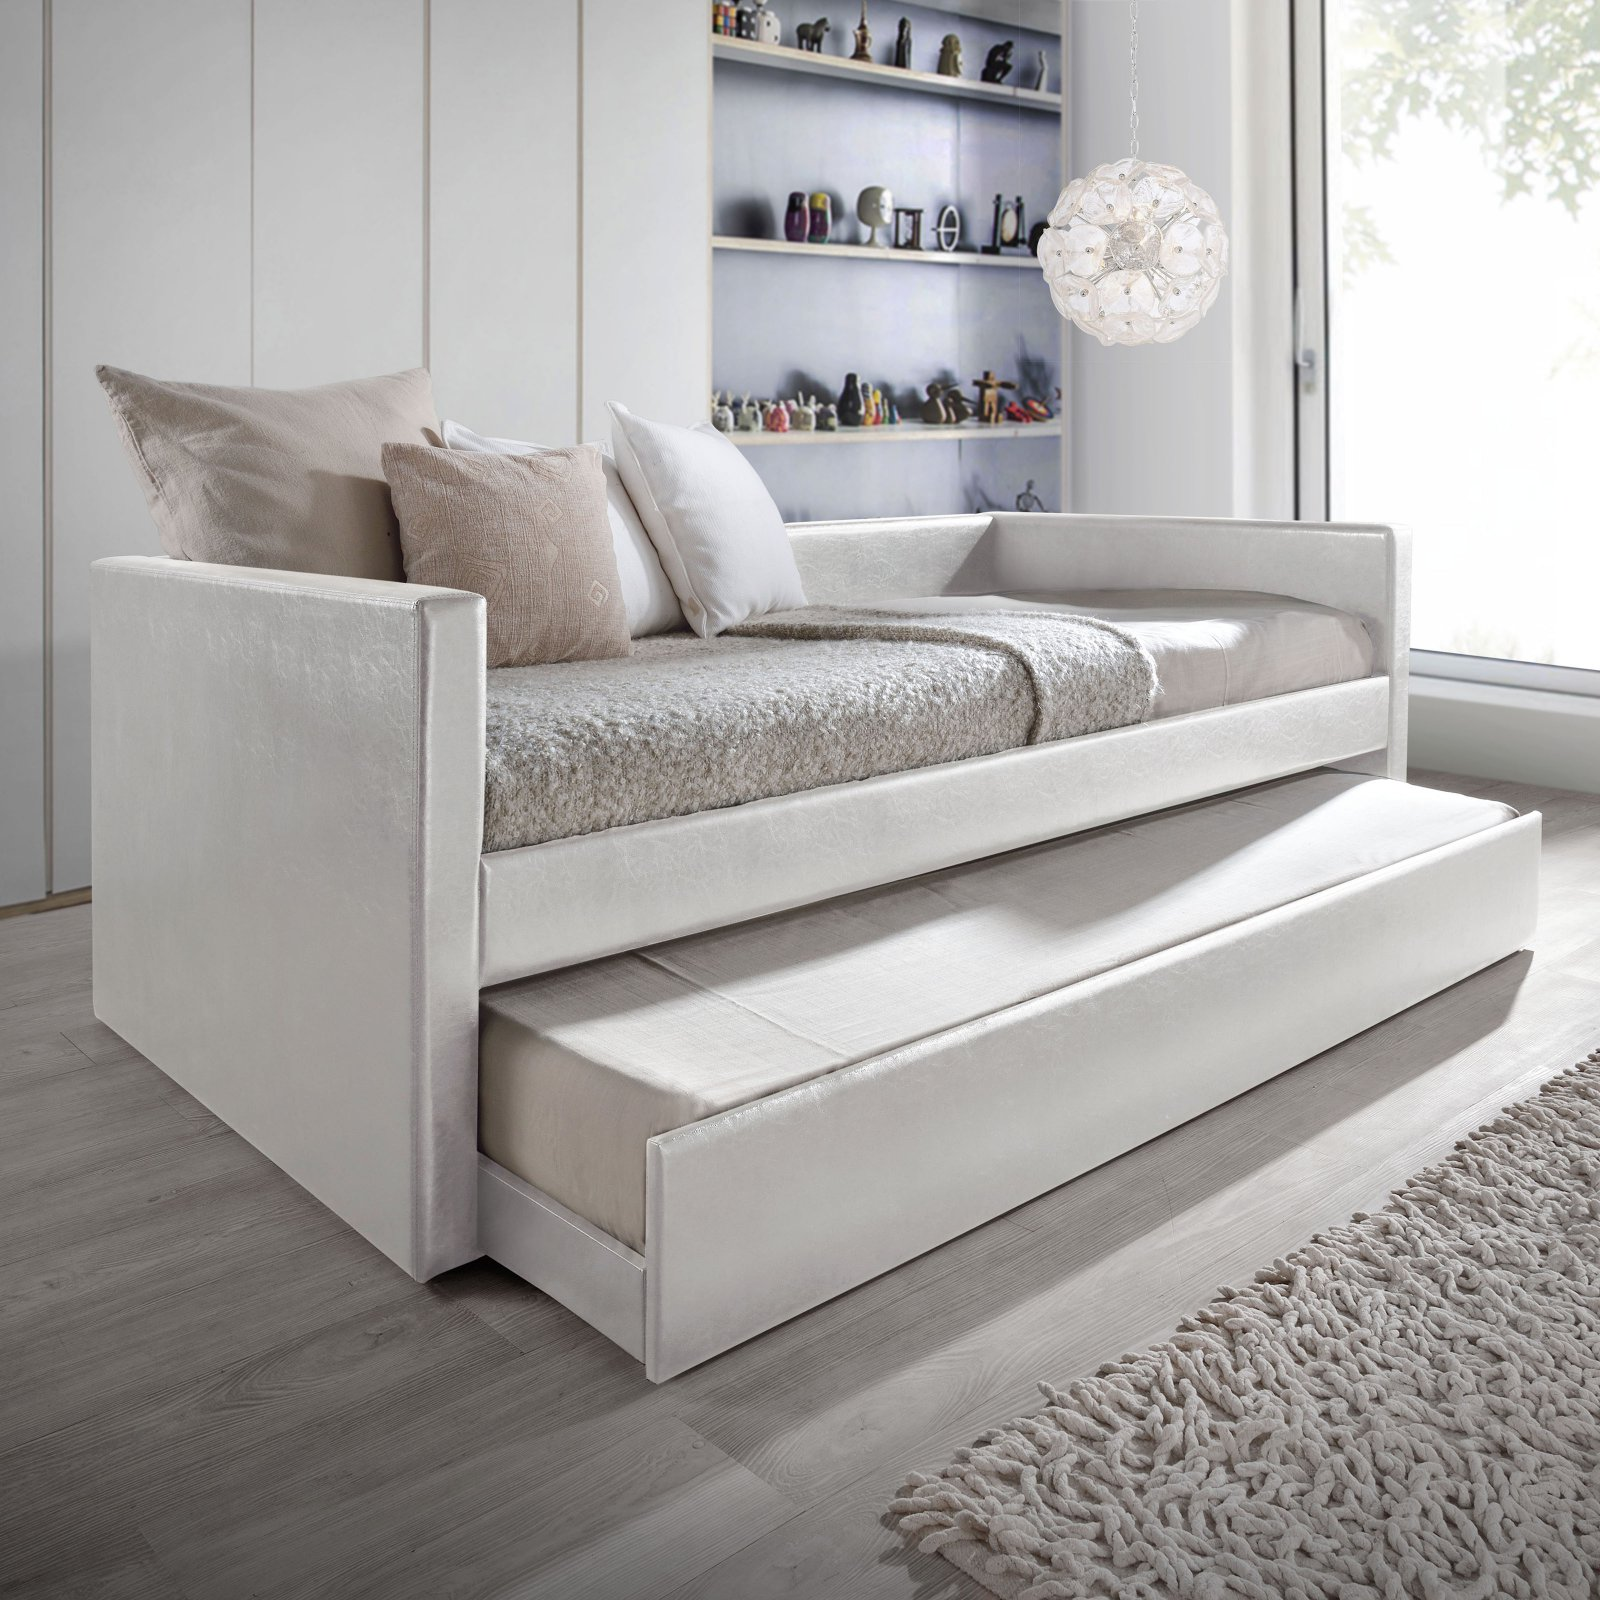 Baxton Studio Risom Modern and Contemporary White Faux Leather Upholstered Twin Size Day Bed Bed Frame with Trundle by Wholesale Interiors